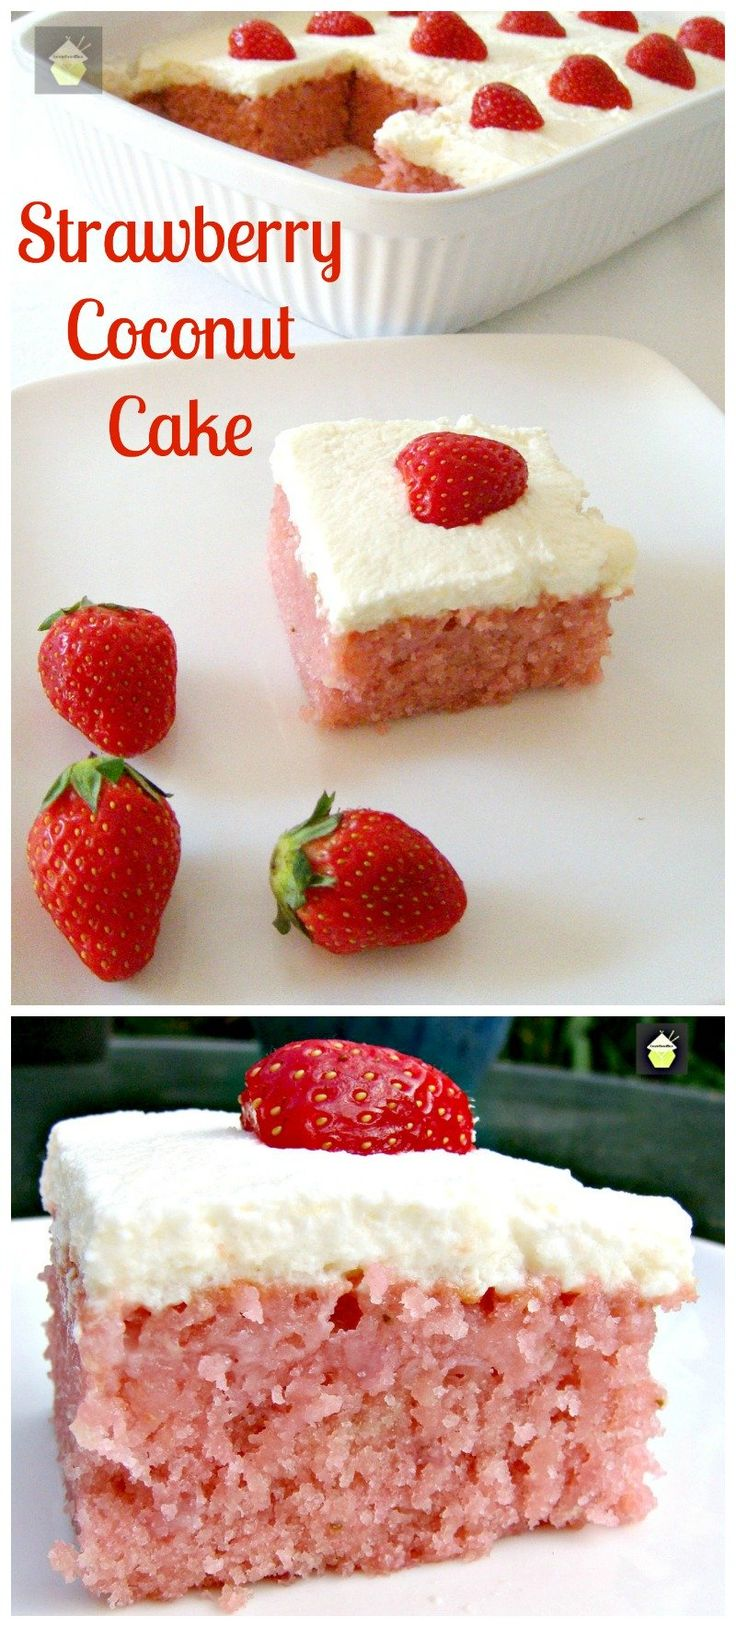 Strawberry and Coconut Poke Cake with Fresh Whipped Cream. Easy made from scratch recipe. Yummy!